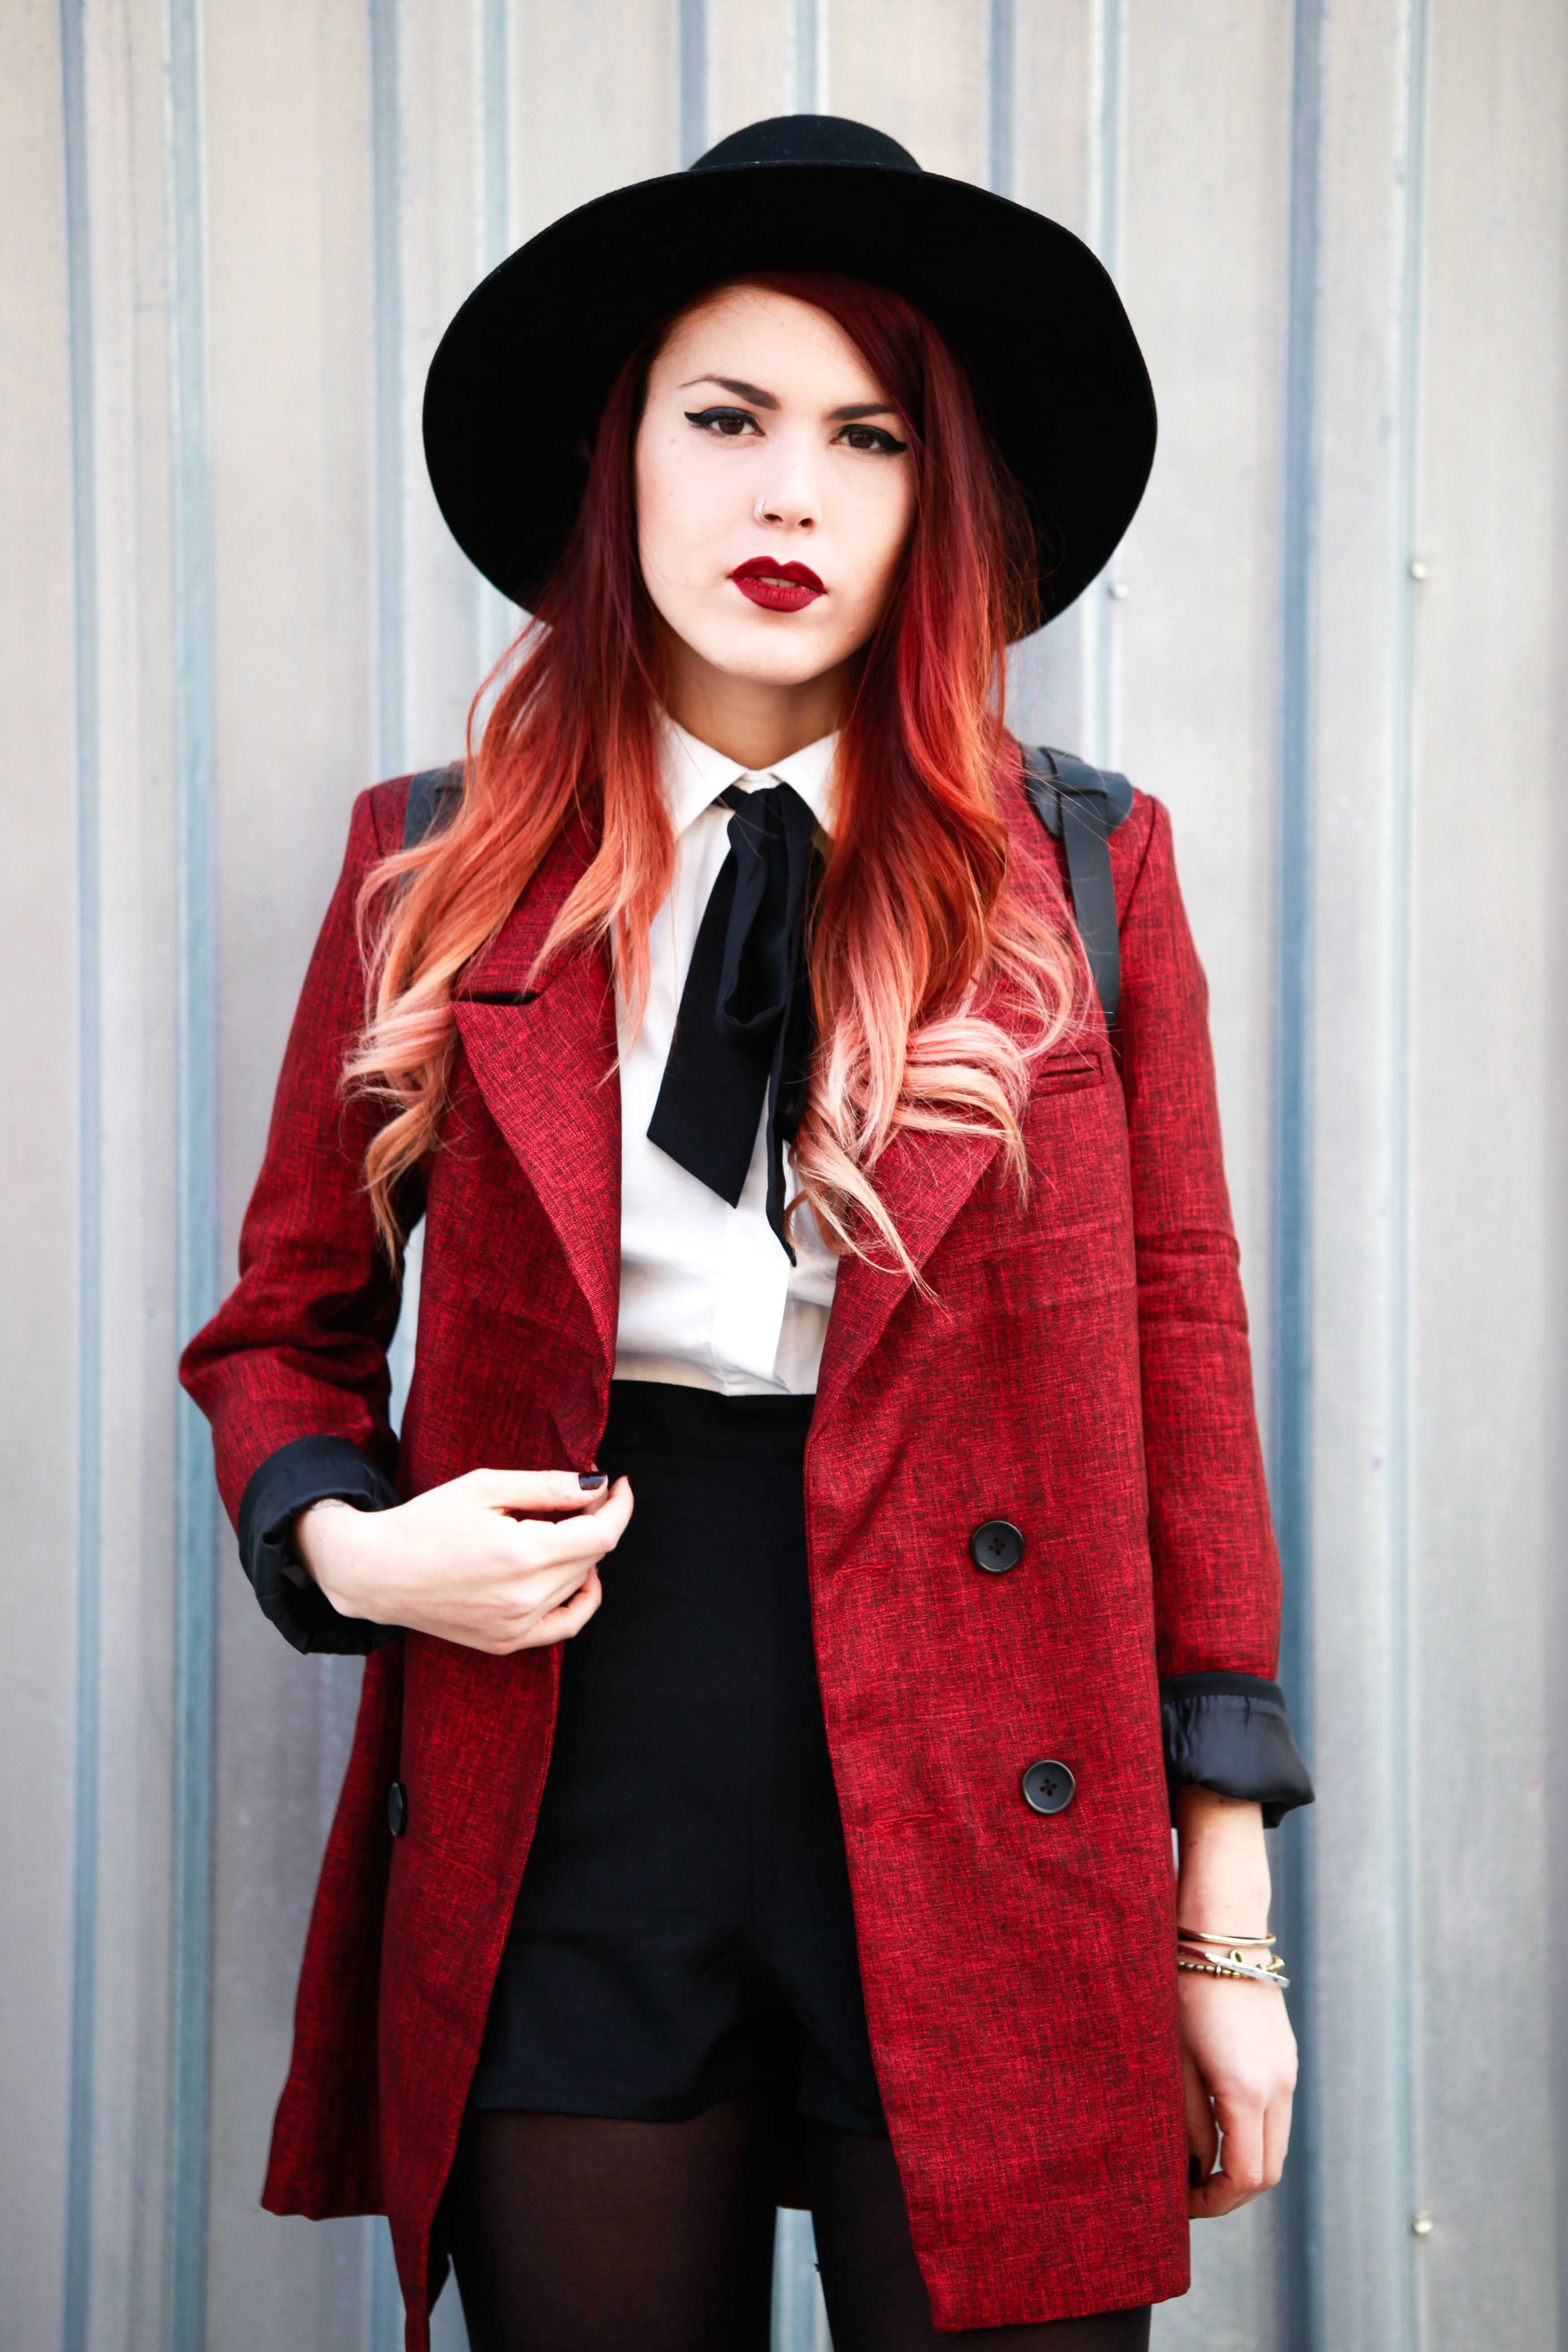 From Le Happy. The Best Fashion Blog Out There. Lua Is So